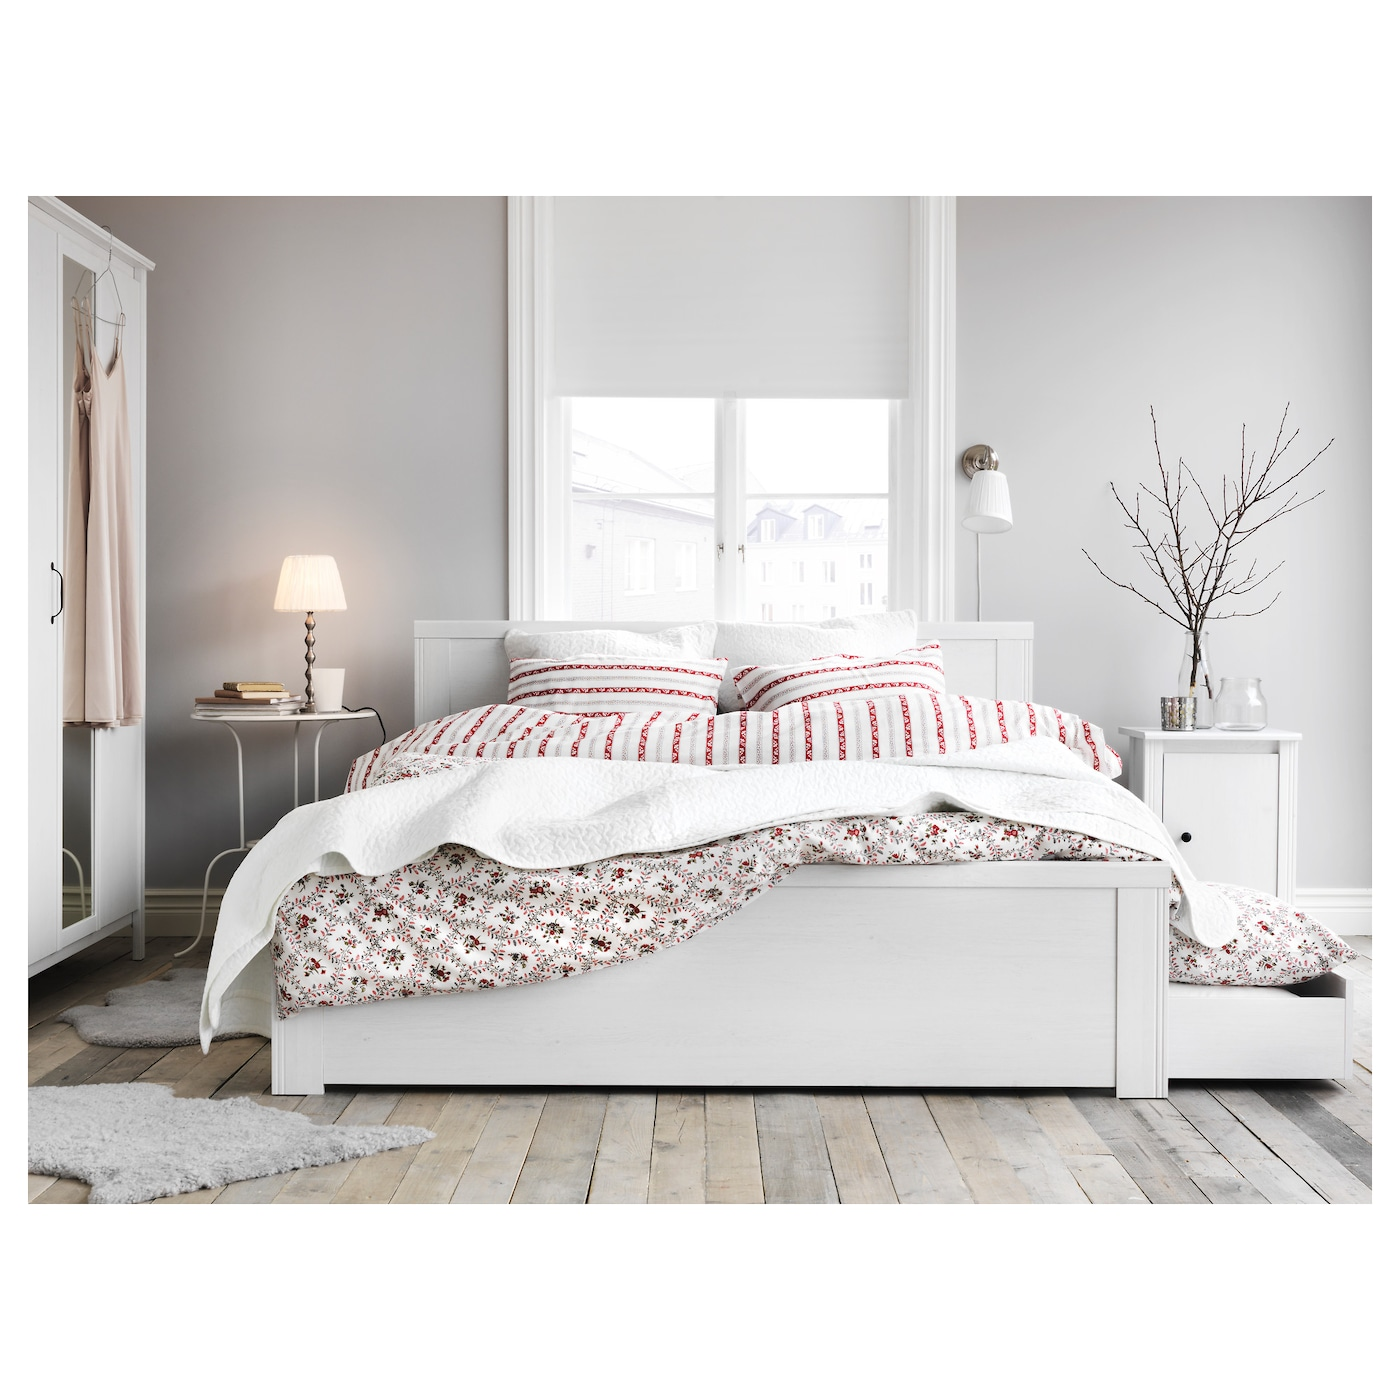 Brusali bed frame with 4 storage boxes white lur y standard double ikea - Ikea storage bedroom ...